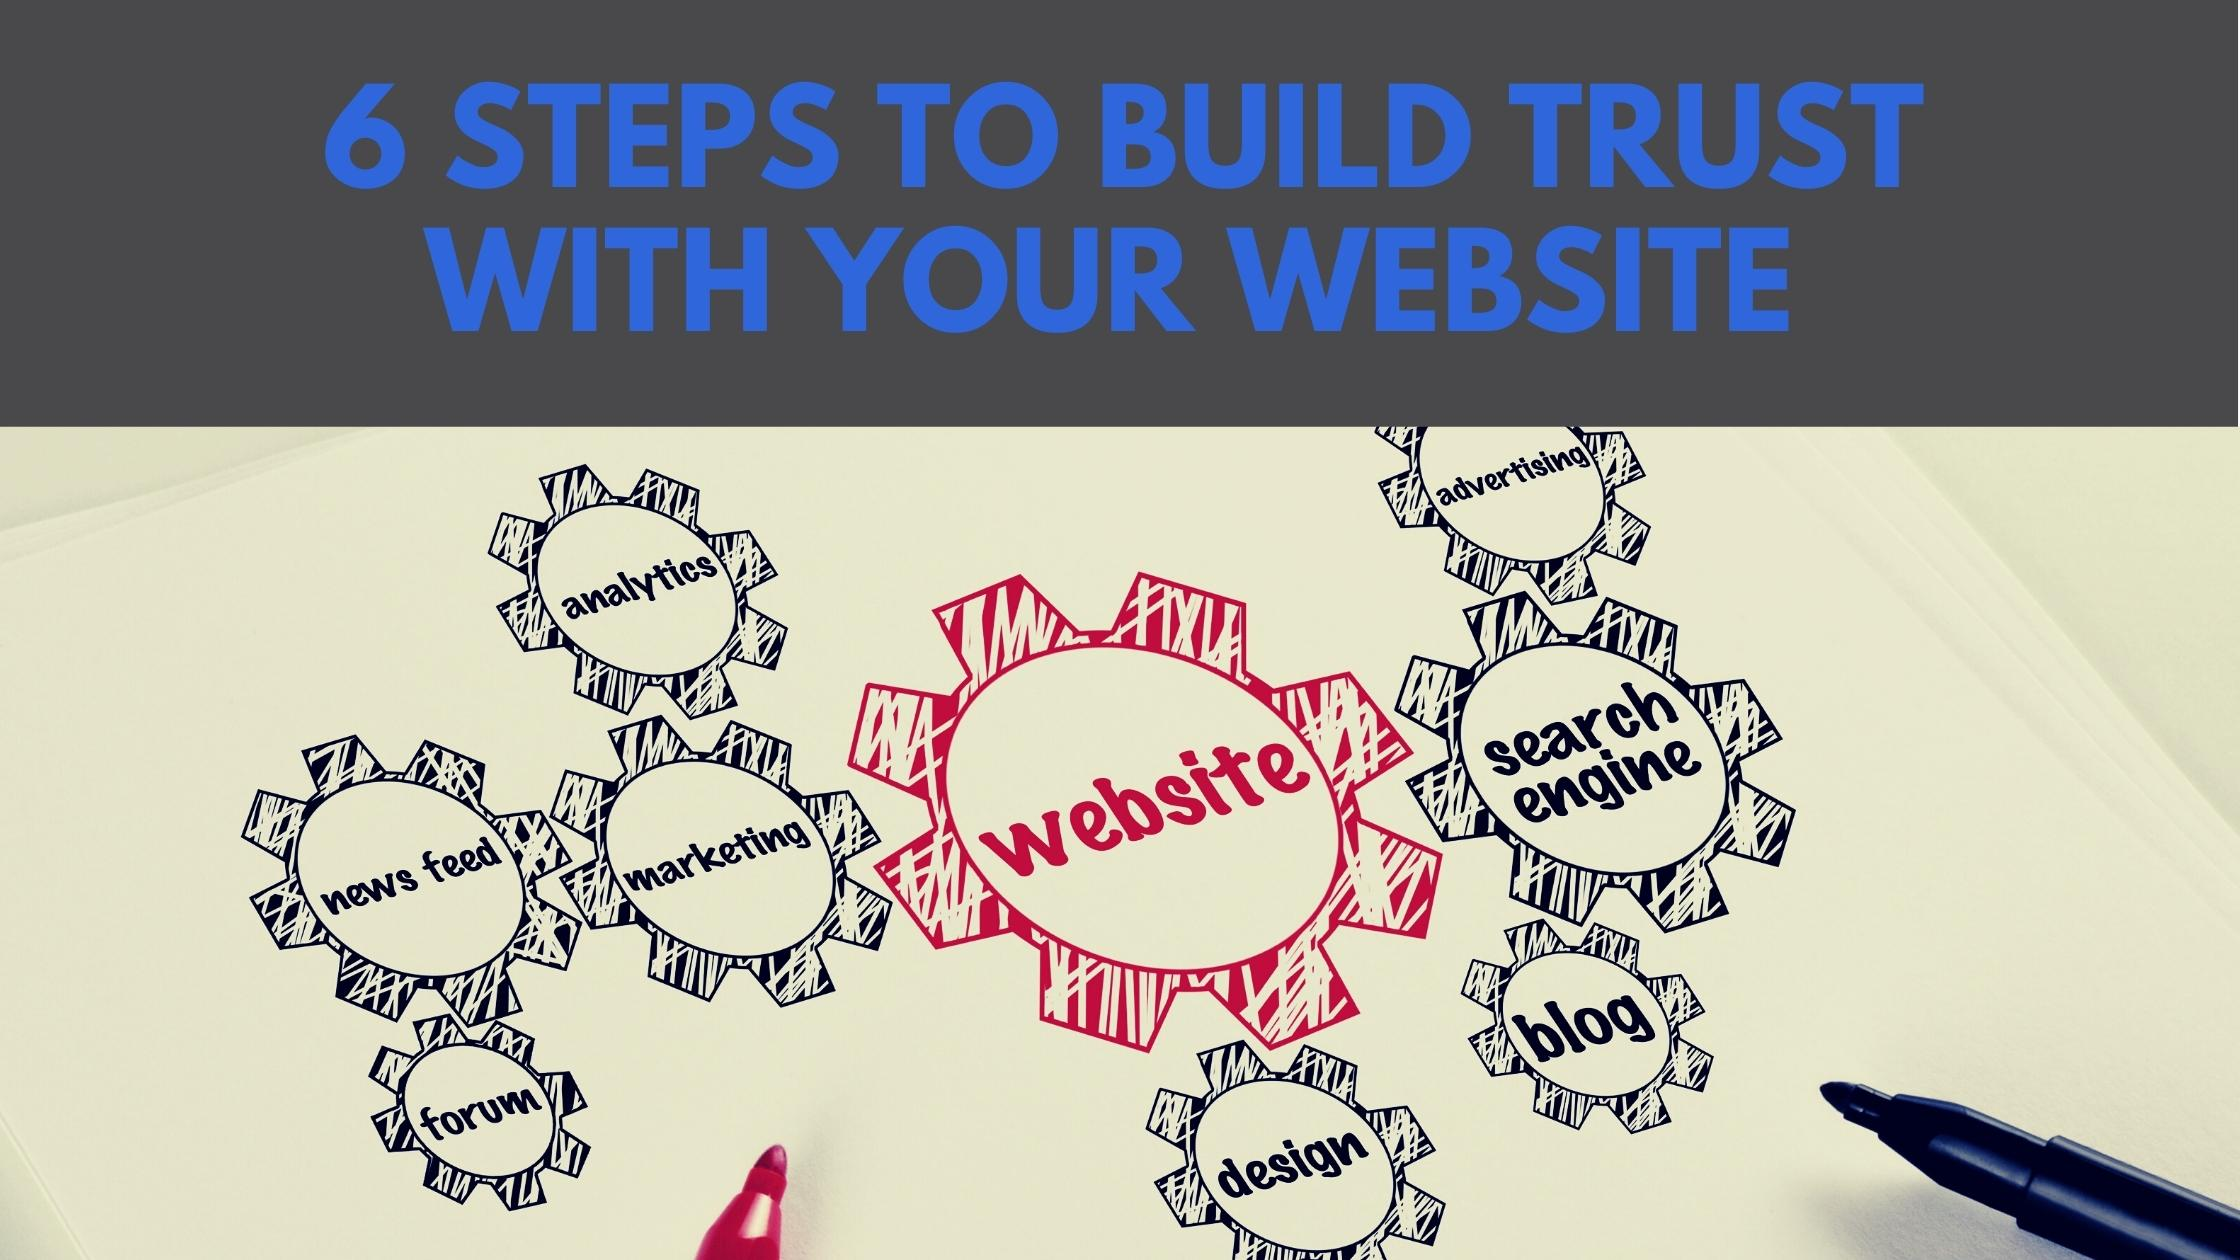 6 Steps to Build Trust with Your Website